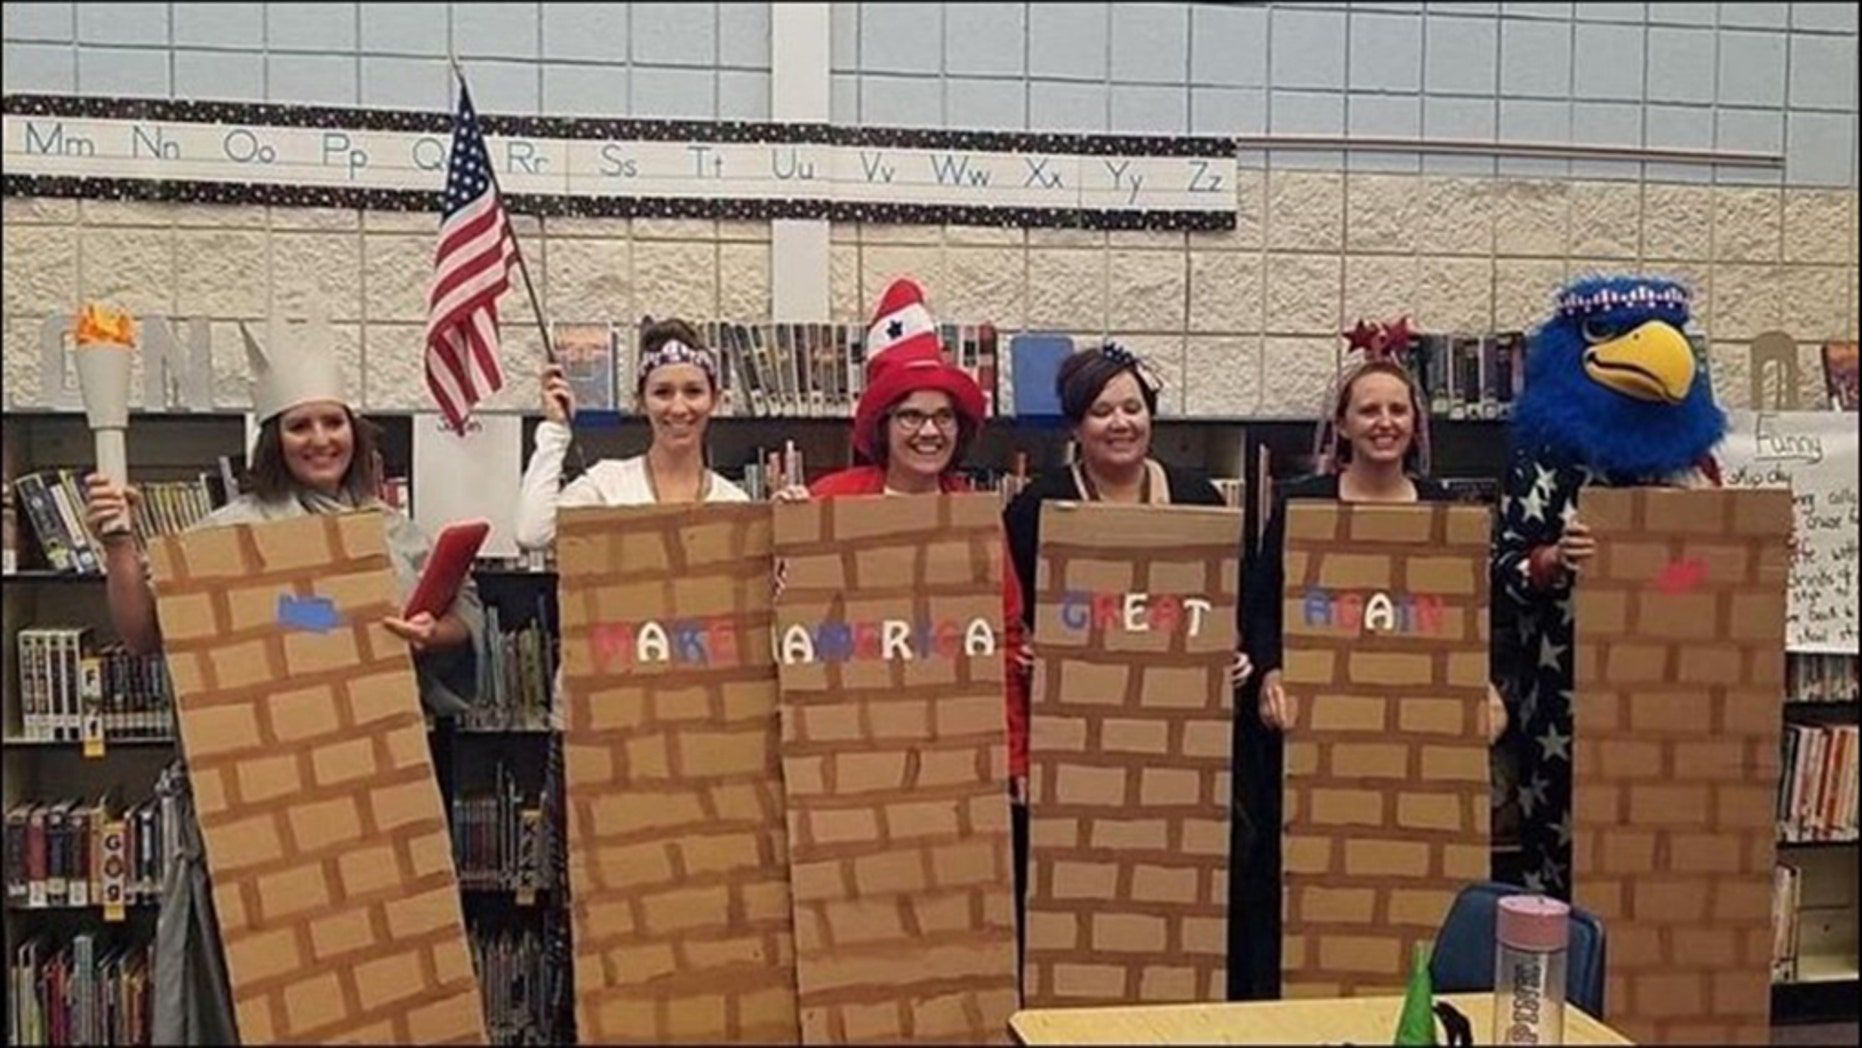 Teachers actually thought 'border wall' costumes were a good idea